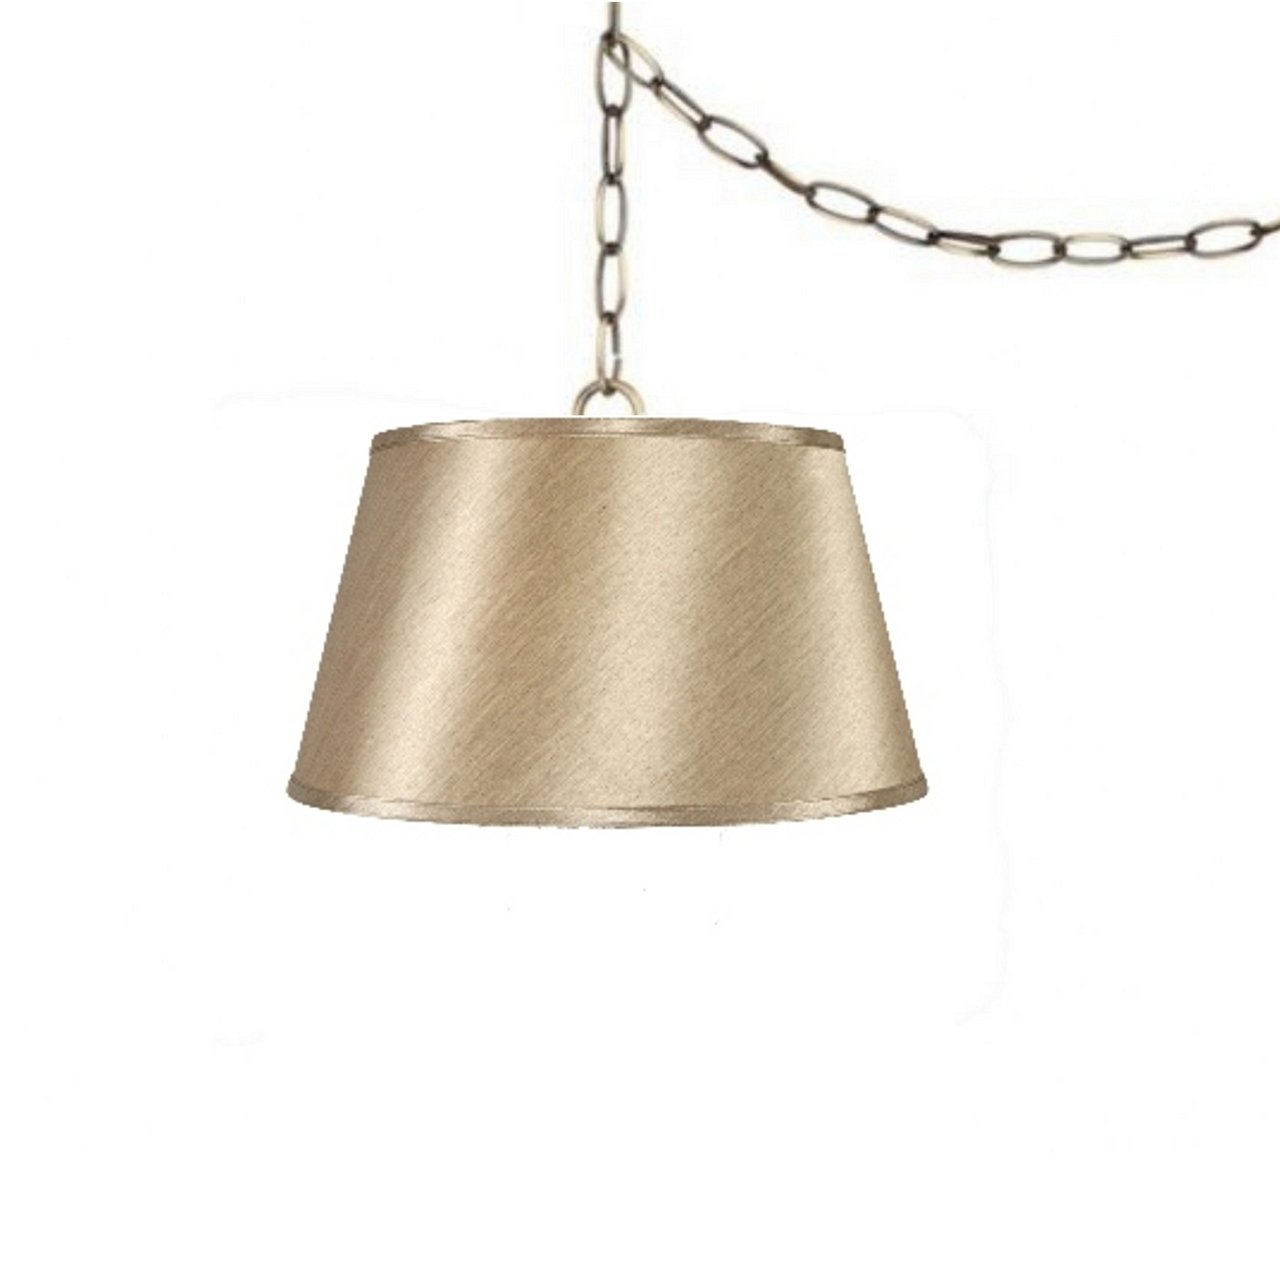 19 inch tan swag lamp lighting fixture hanging plugin sale ends soon ceiling pendant fixtures amazoncom